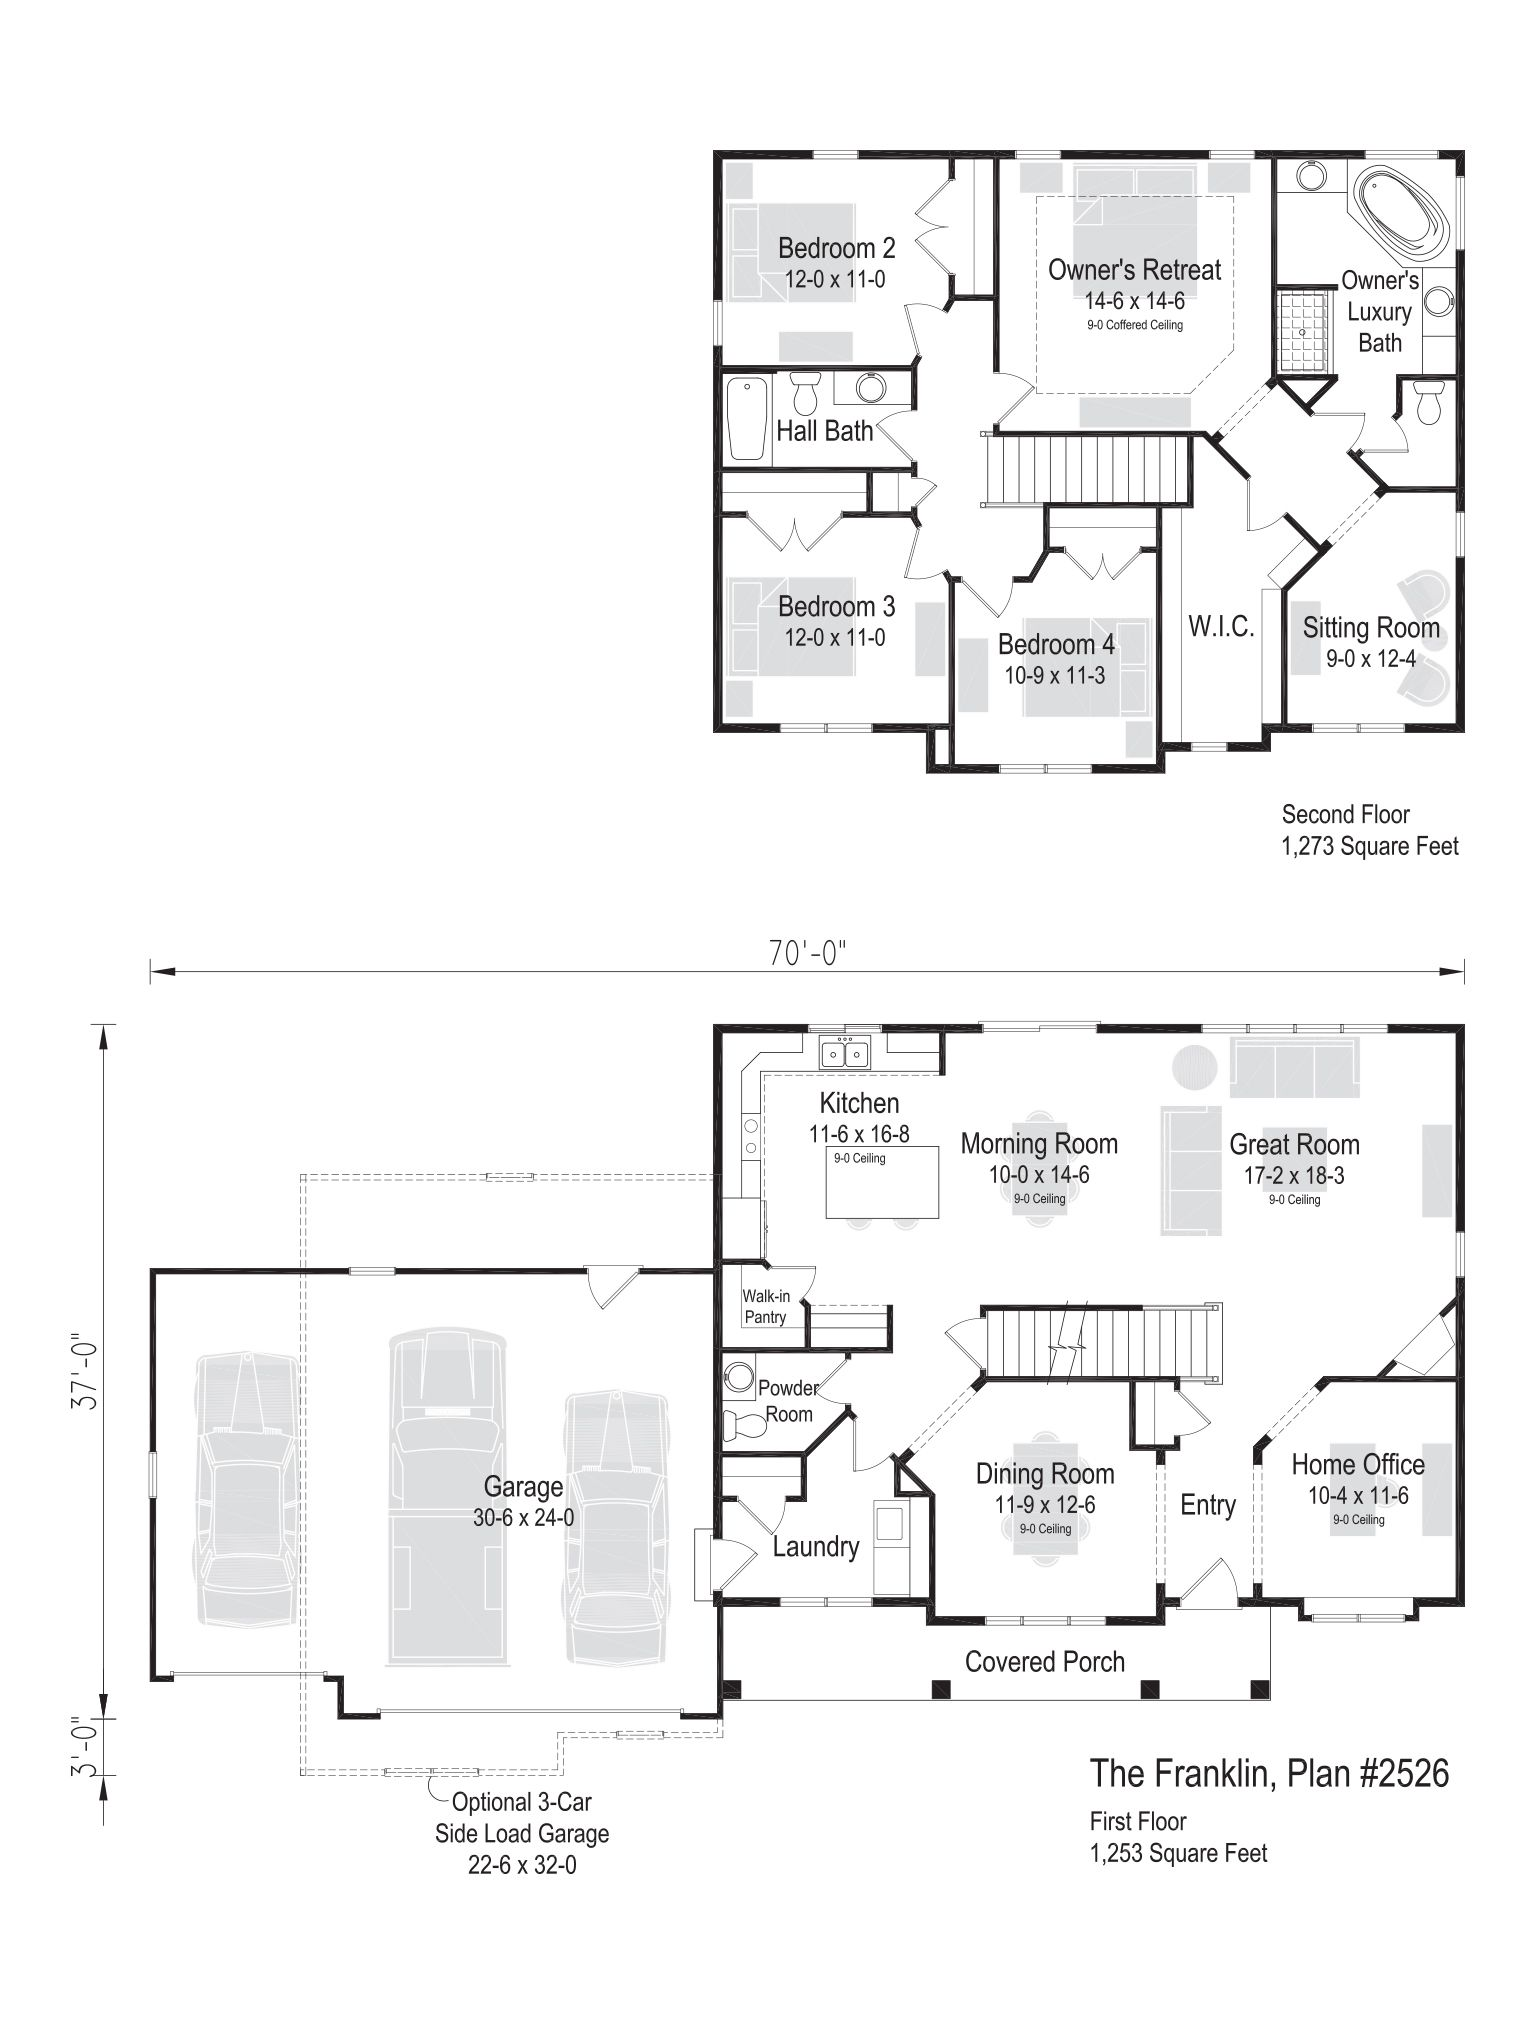 The Franklin Plan 2526 2 Story 2 526 Sq Ft 4 Bedroom 2 5 Bathroom House Floor Plans House Layout Plans Floor Plan 4 Bedroom